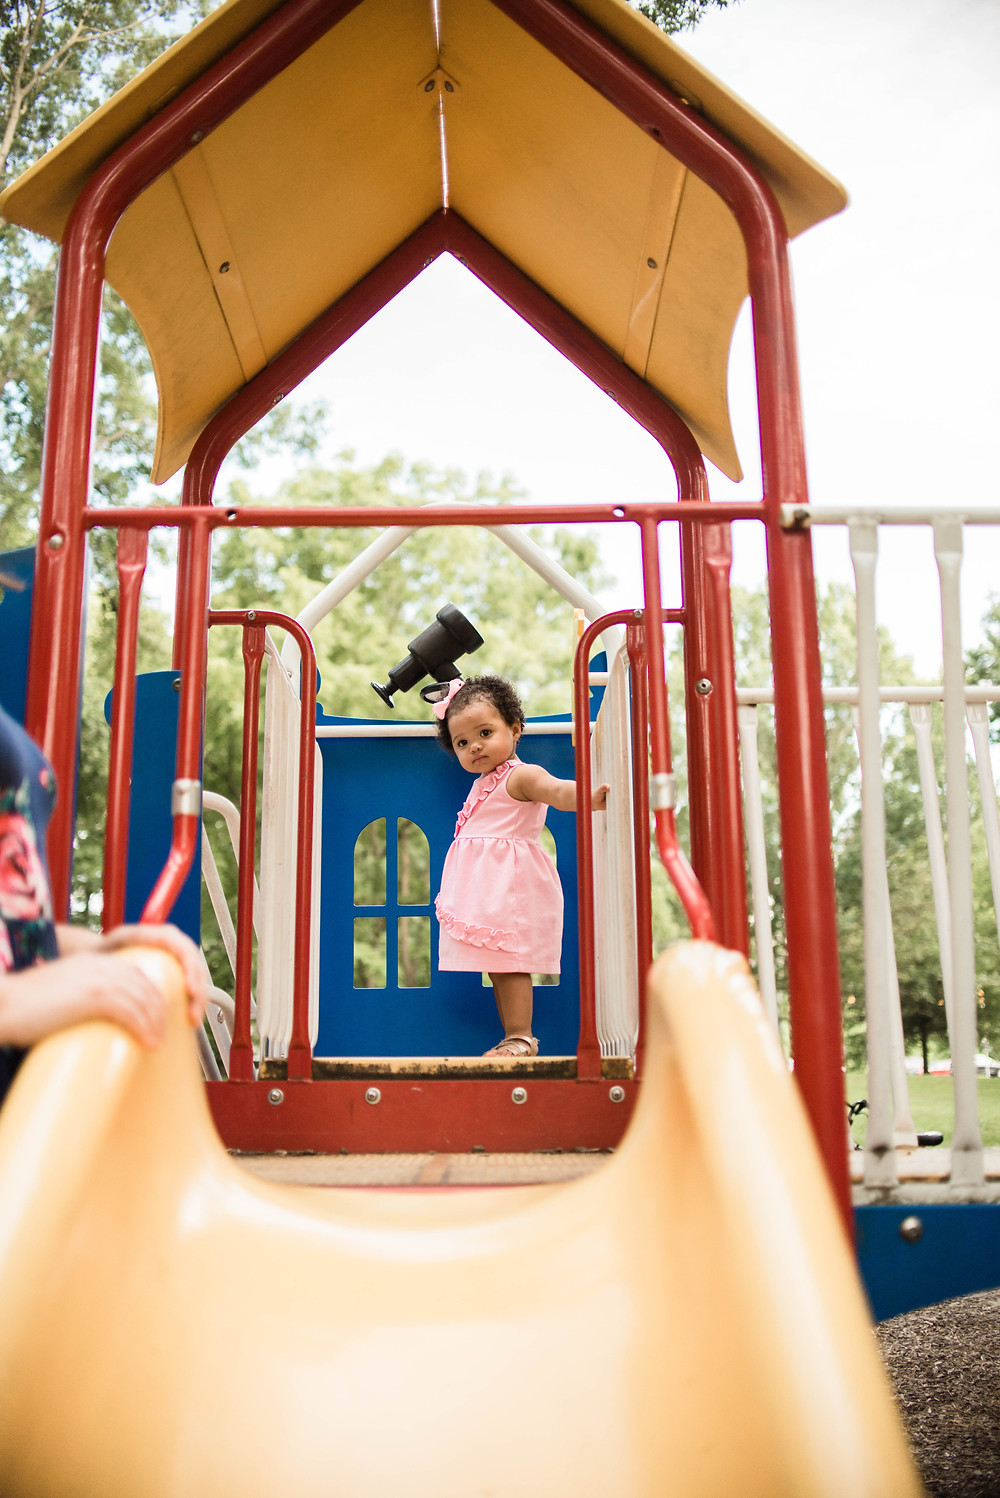 Best playground for toddlers Northern VA McLean Virginia shannon ritter photography